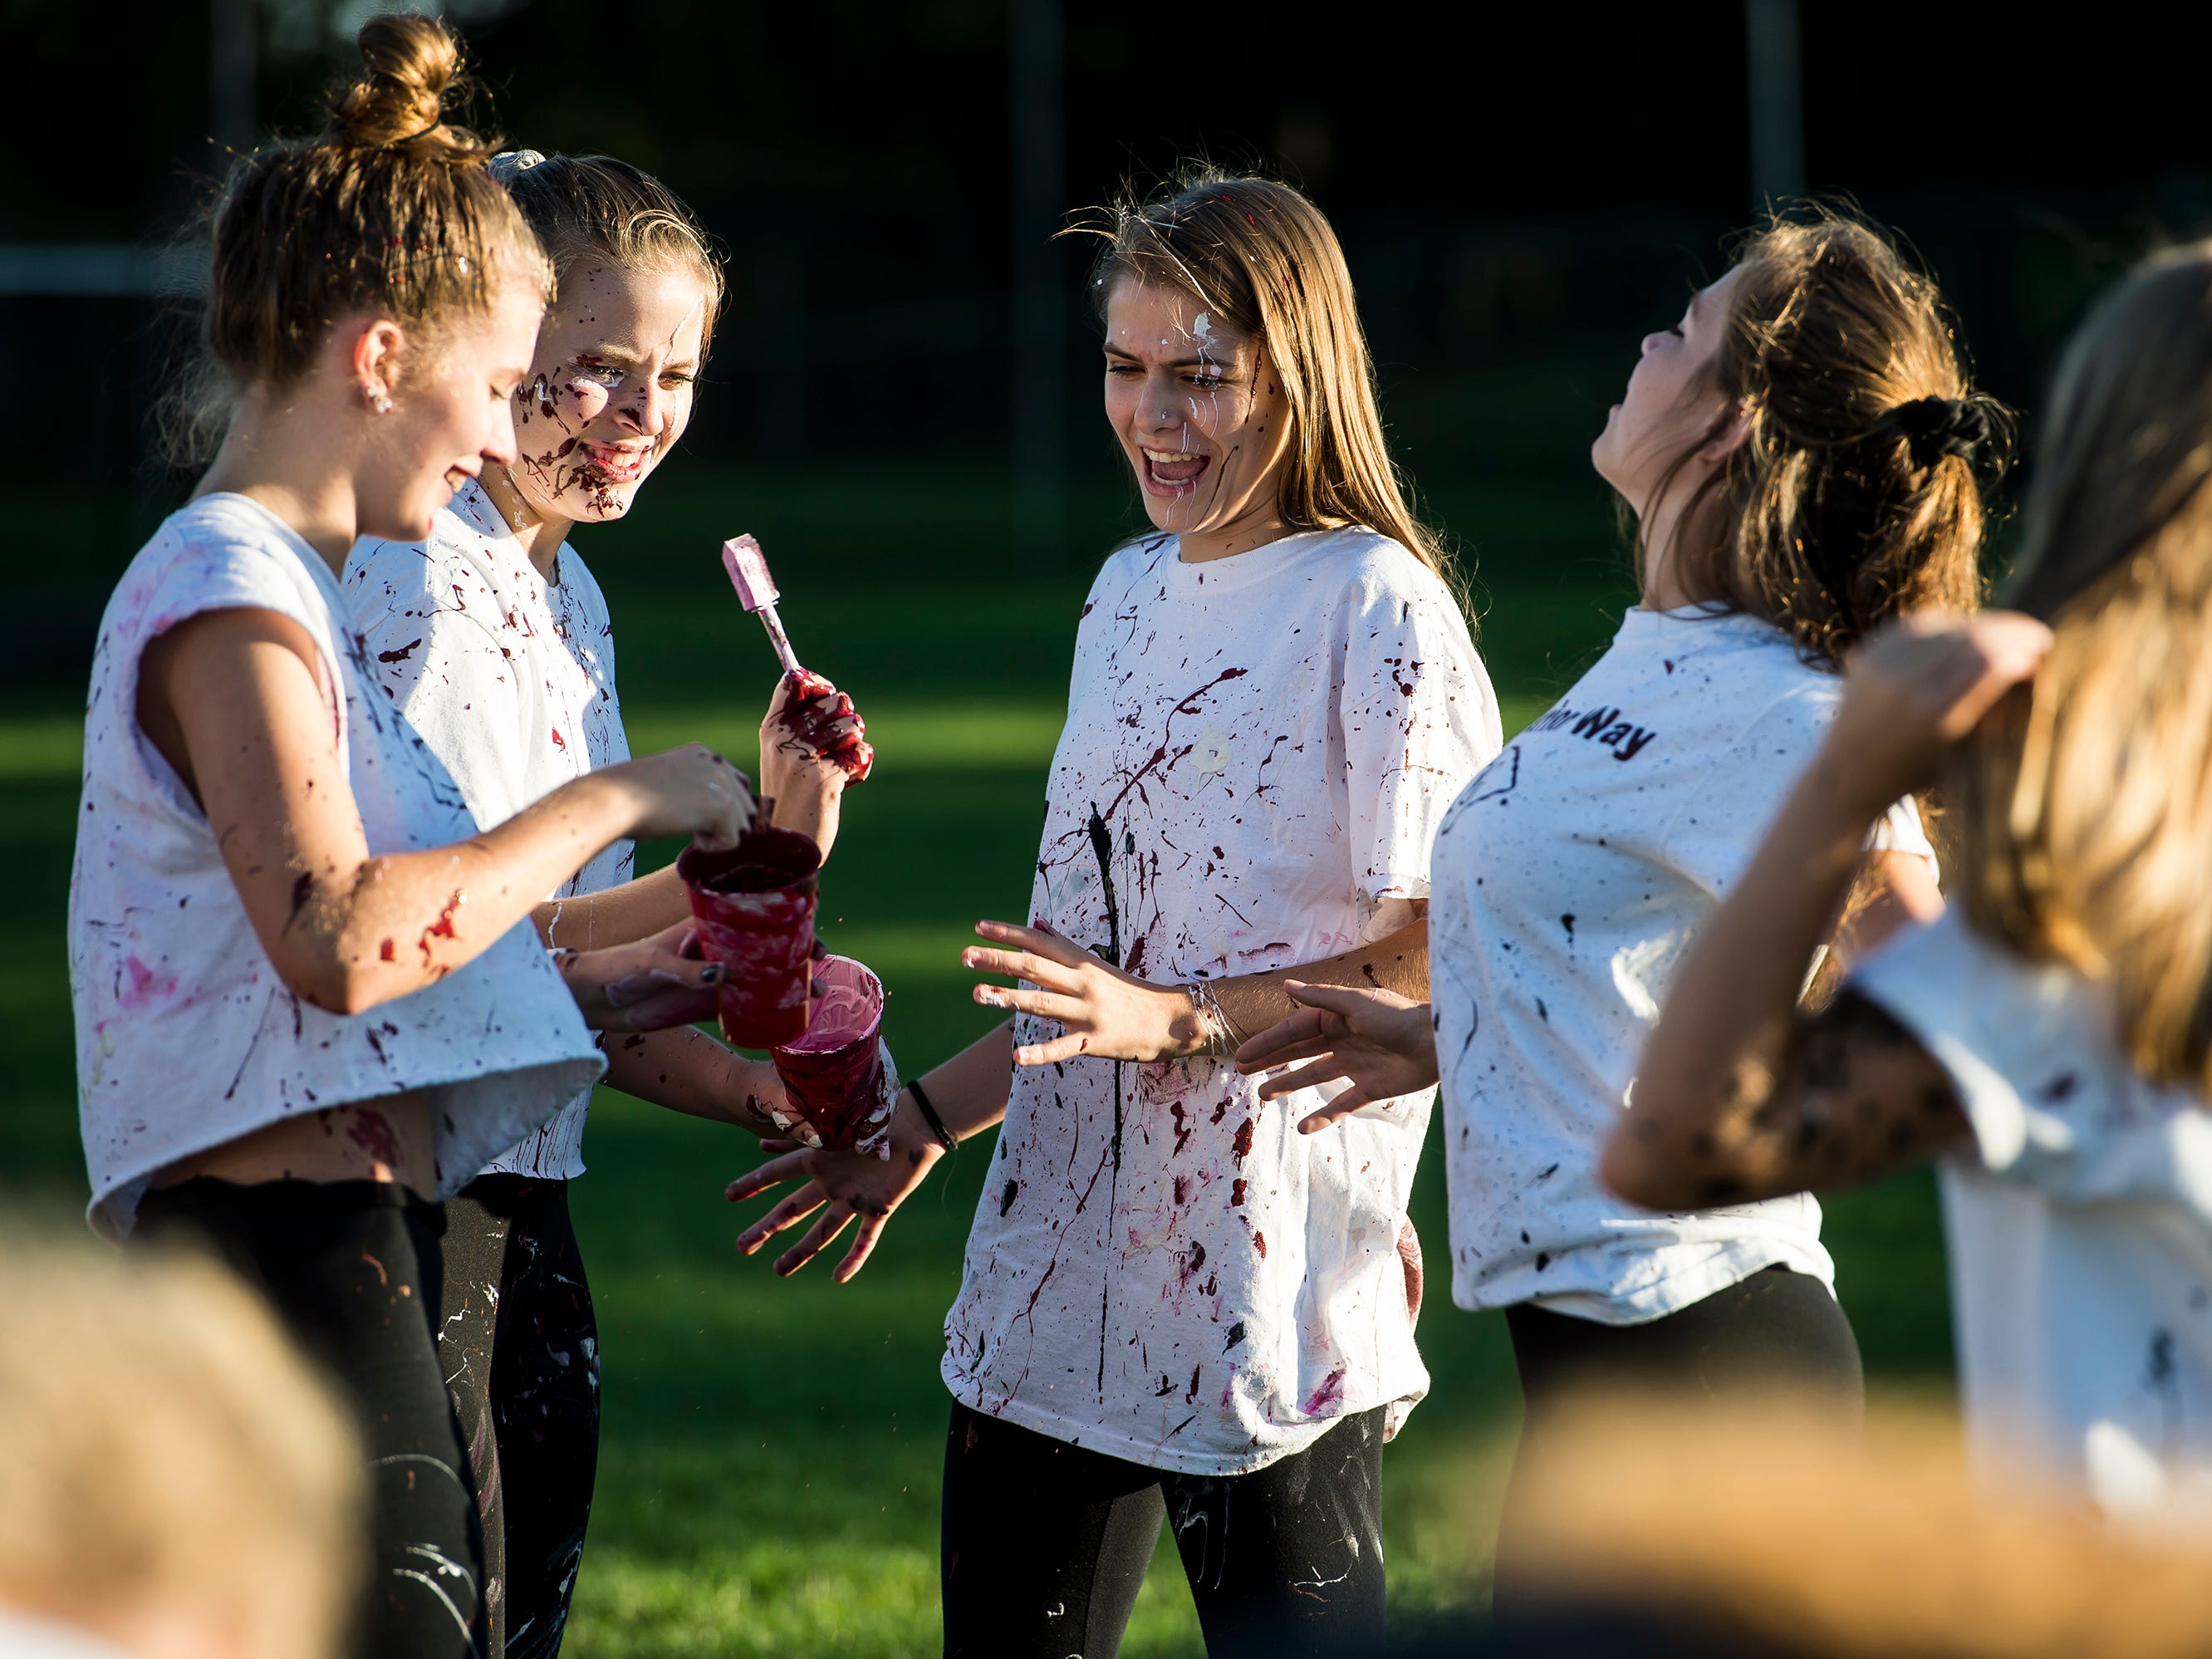 """Gettysburg Area High School students cover each other in paint during a """"splatter-fest"""" prior to the football game against Eastern York on Friday, September 28, 2018. The fest helped raise money for the school's Mini-THON."""